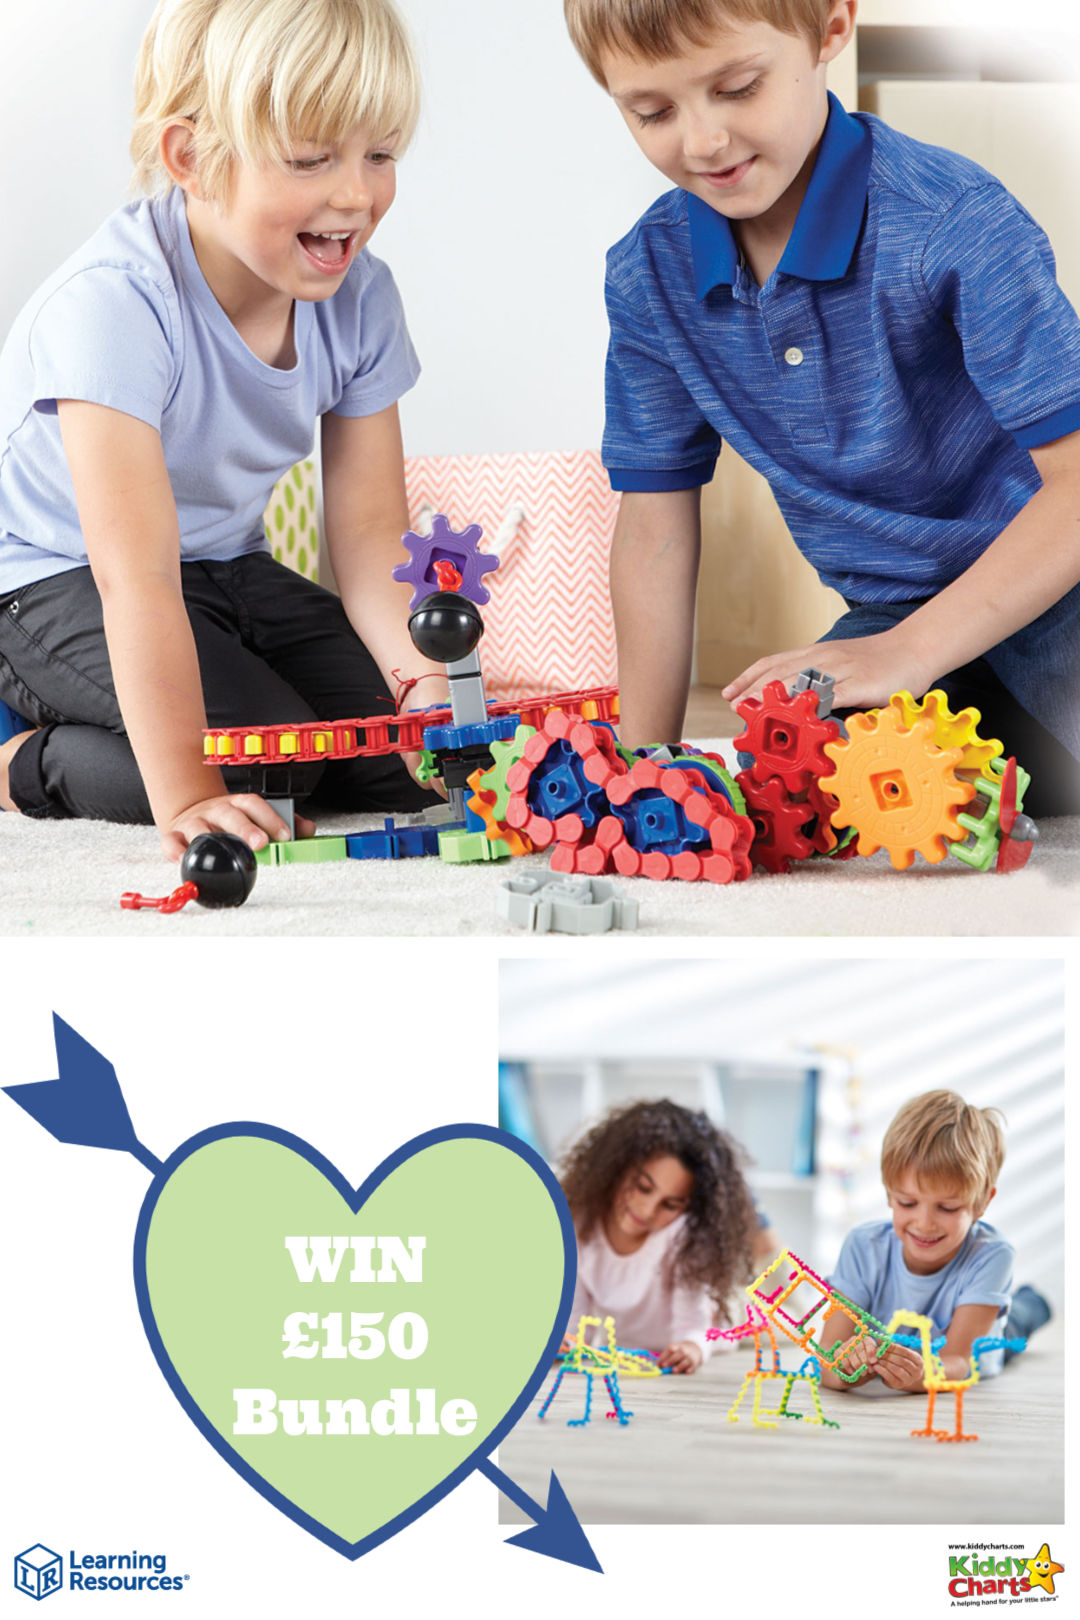 Win an amazing £150 bundle of toys #win #giveaways #toys